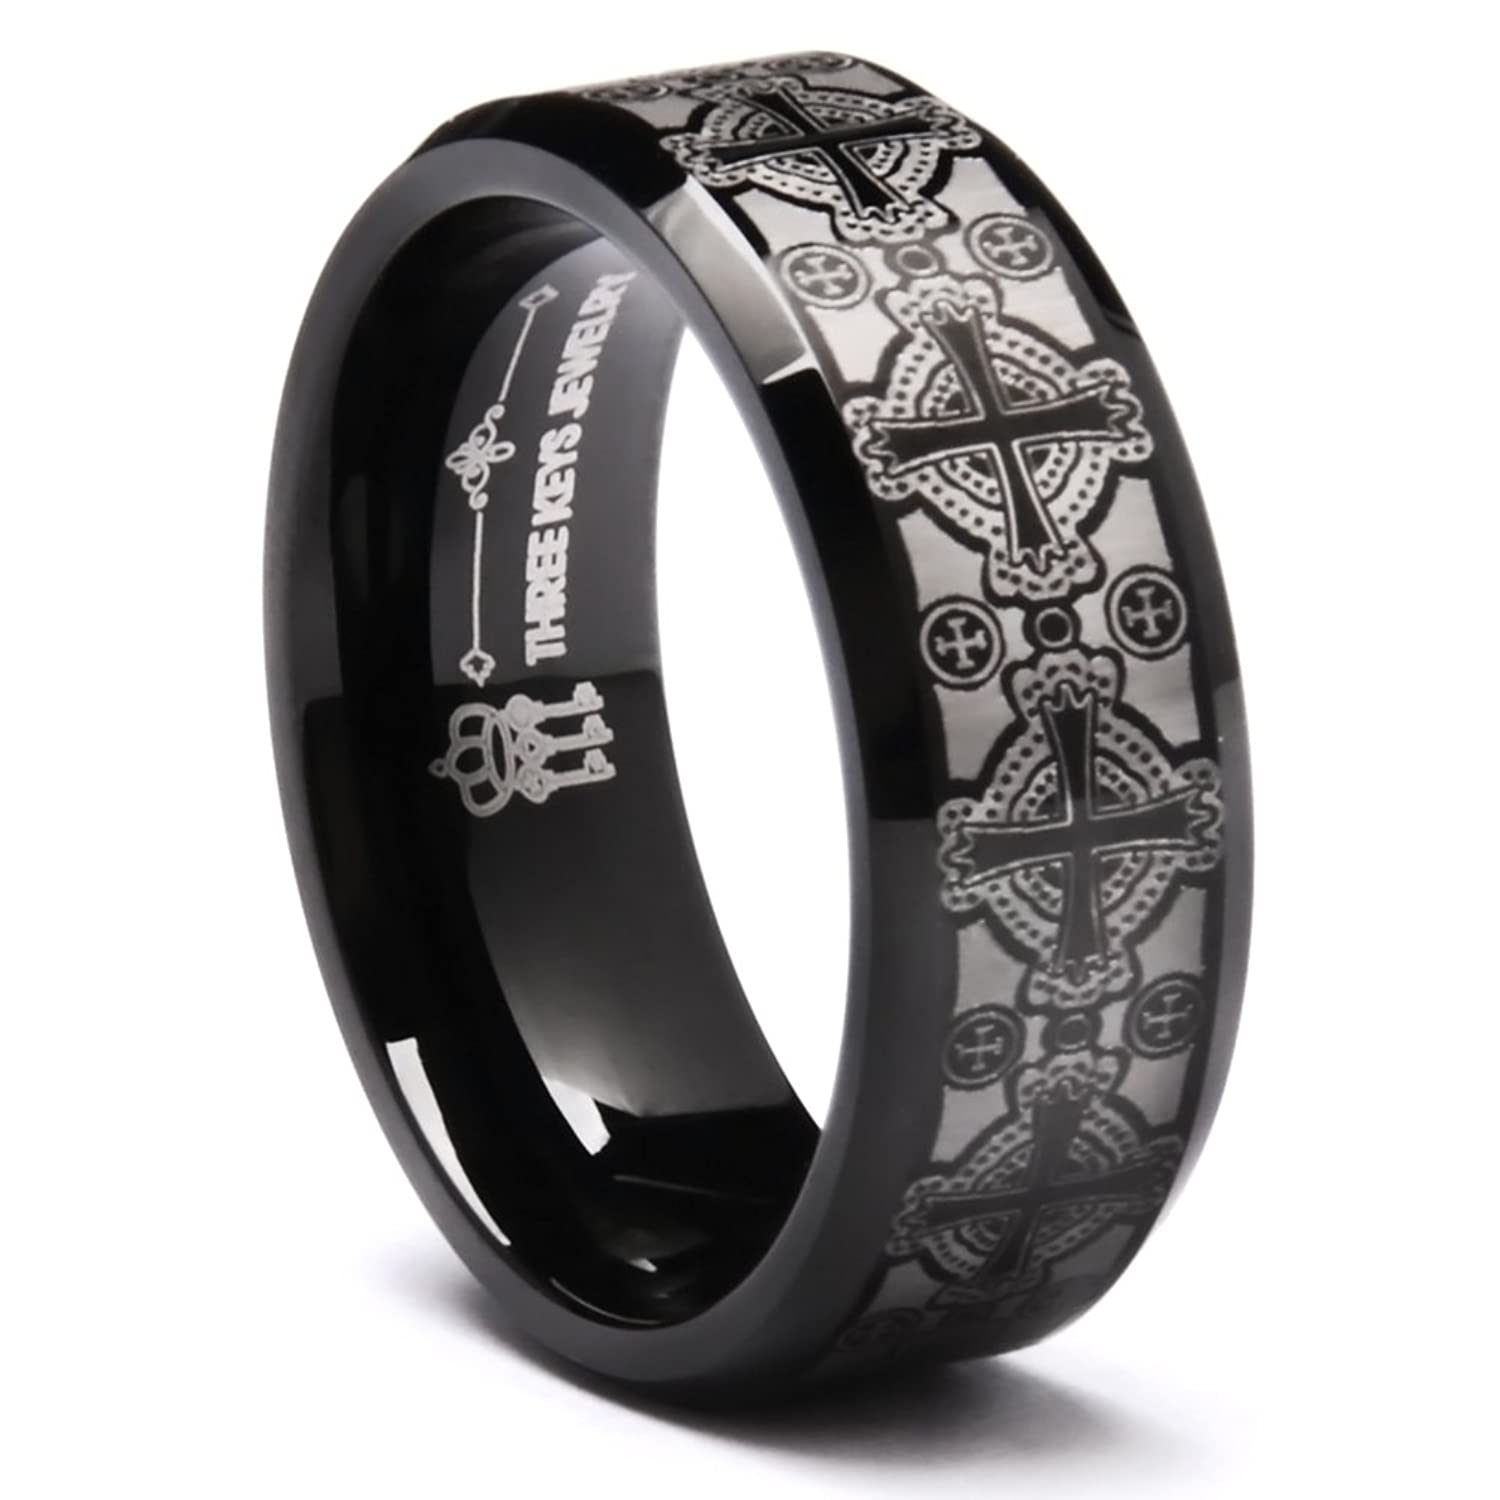 Three Keys 8mm Laser Engraved Celtic Crosses Tungsten Ring Black Beveled  Edge Men's Wedding Band Ring